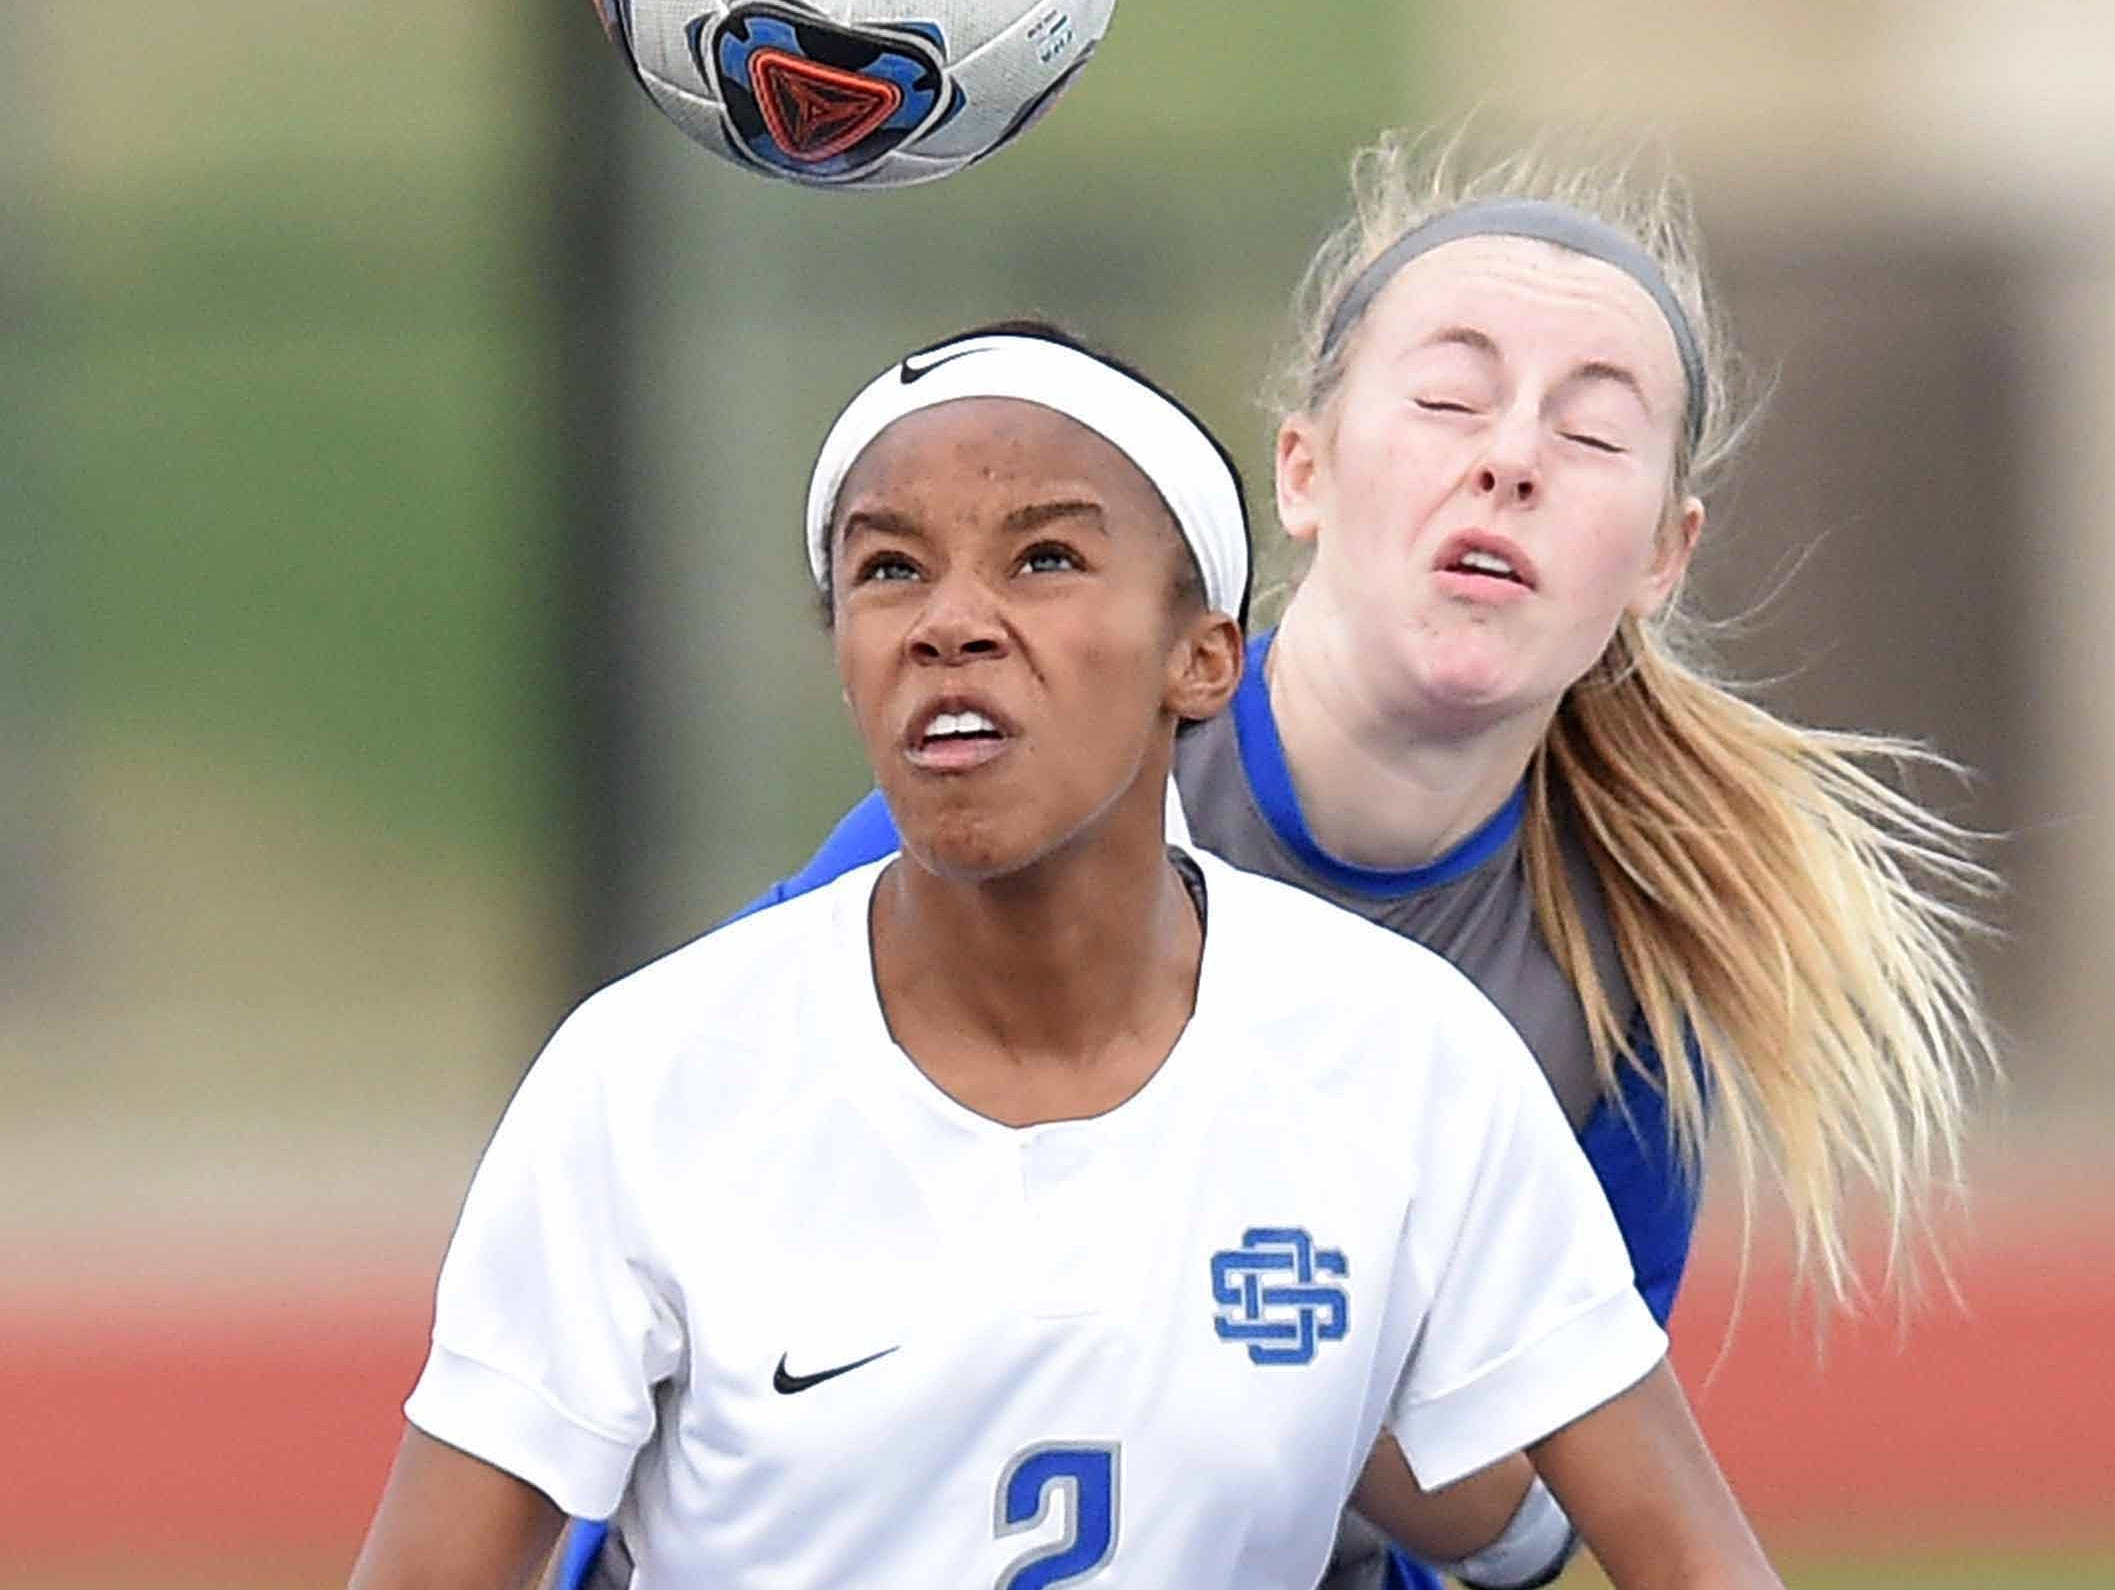 Ocean Springs' Kinsley Harmon (2) boxes out a Madison Central Lady Jaguar for a header in the Class 6A state championship in the MHSAA BlueCross Blue Shield of Mississippi Soccer Classic on Saturday, February 9, 2019, at Ridgeland High School in Ridgeland, Miss.